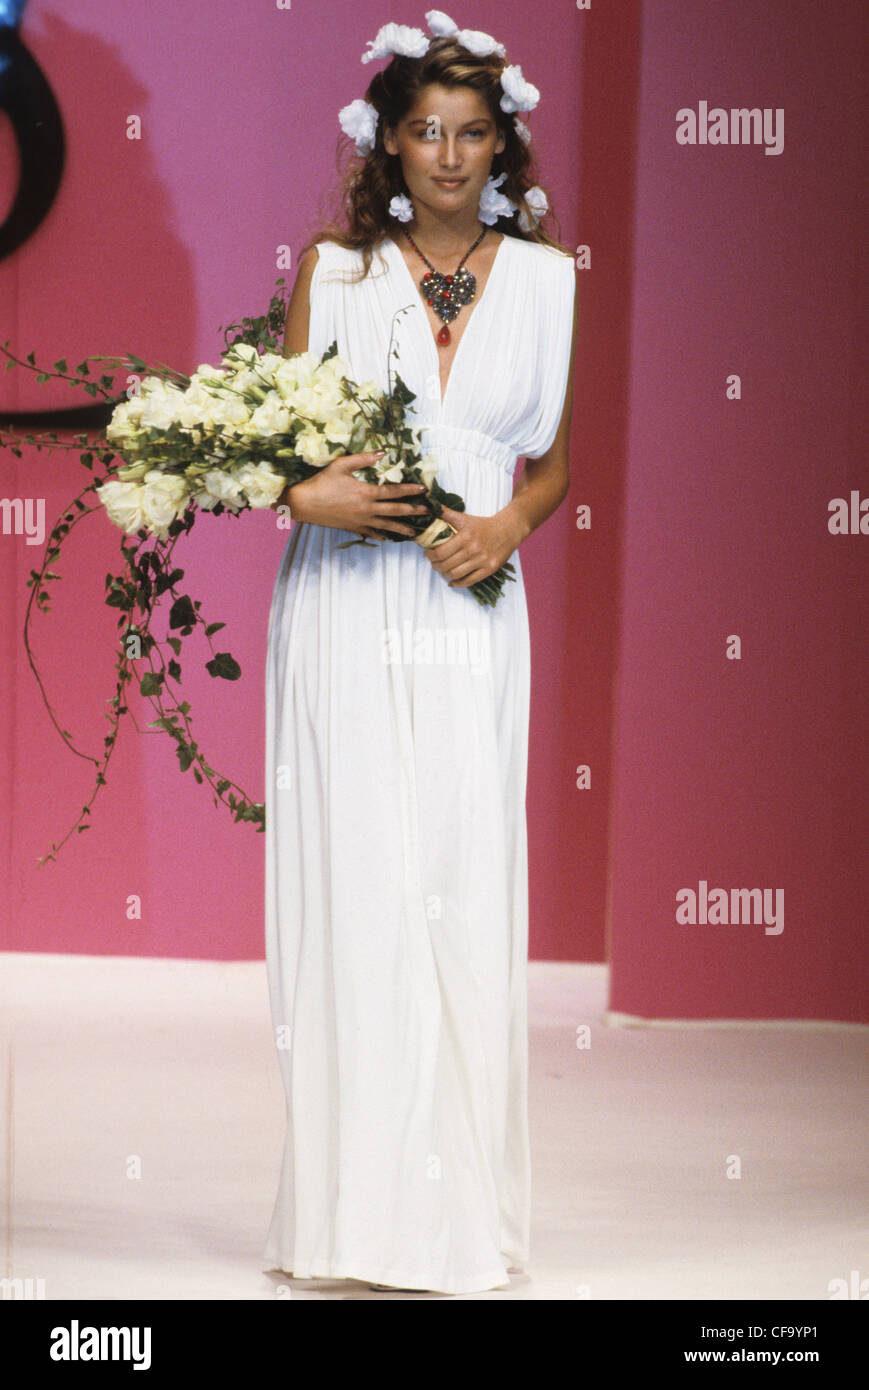 607a9a420b6 Yves Saint Laurent Spring Summer French model Laetitia Casta wearing white  grecian dress accessorized floral garland, and